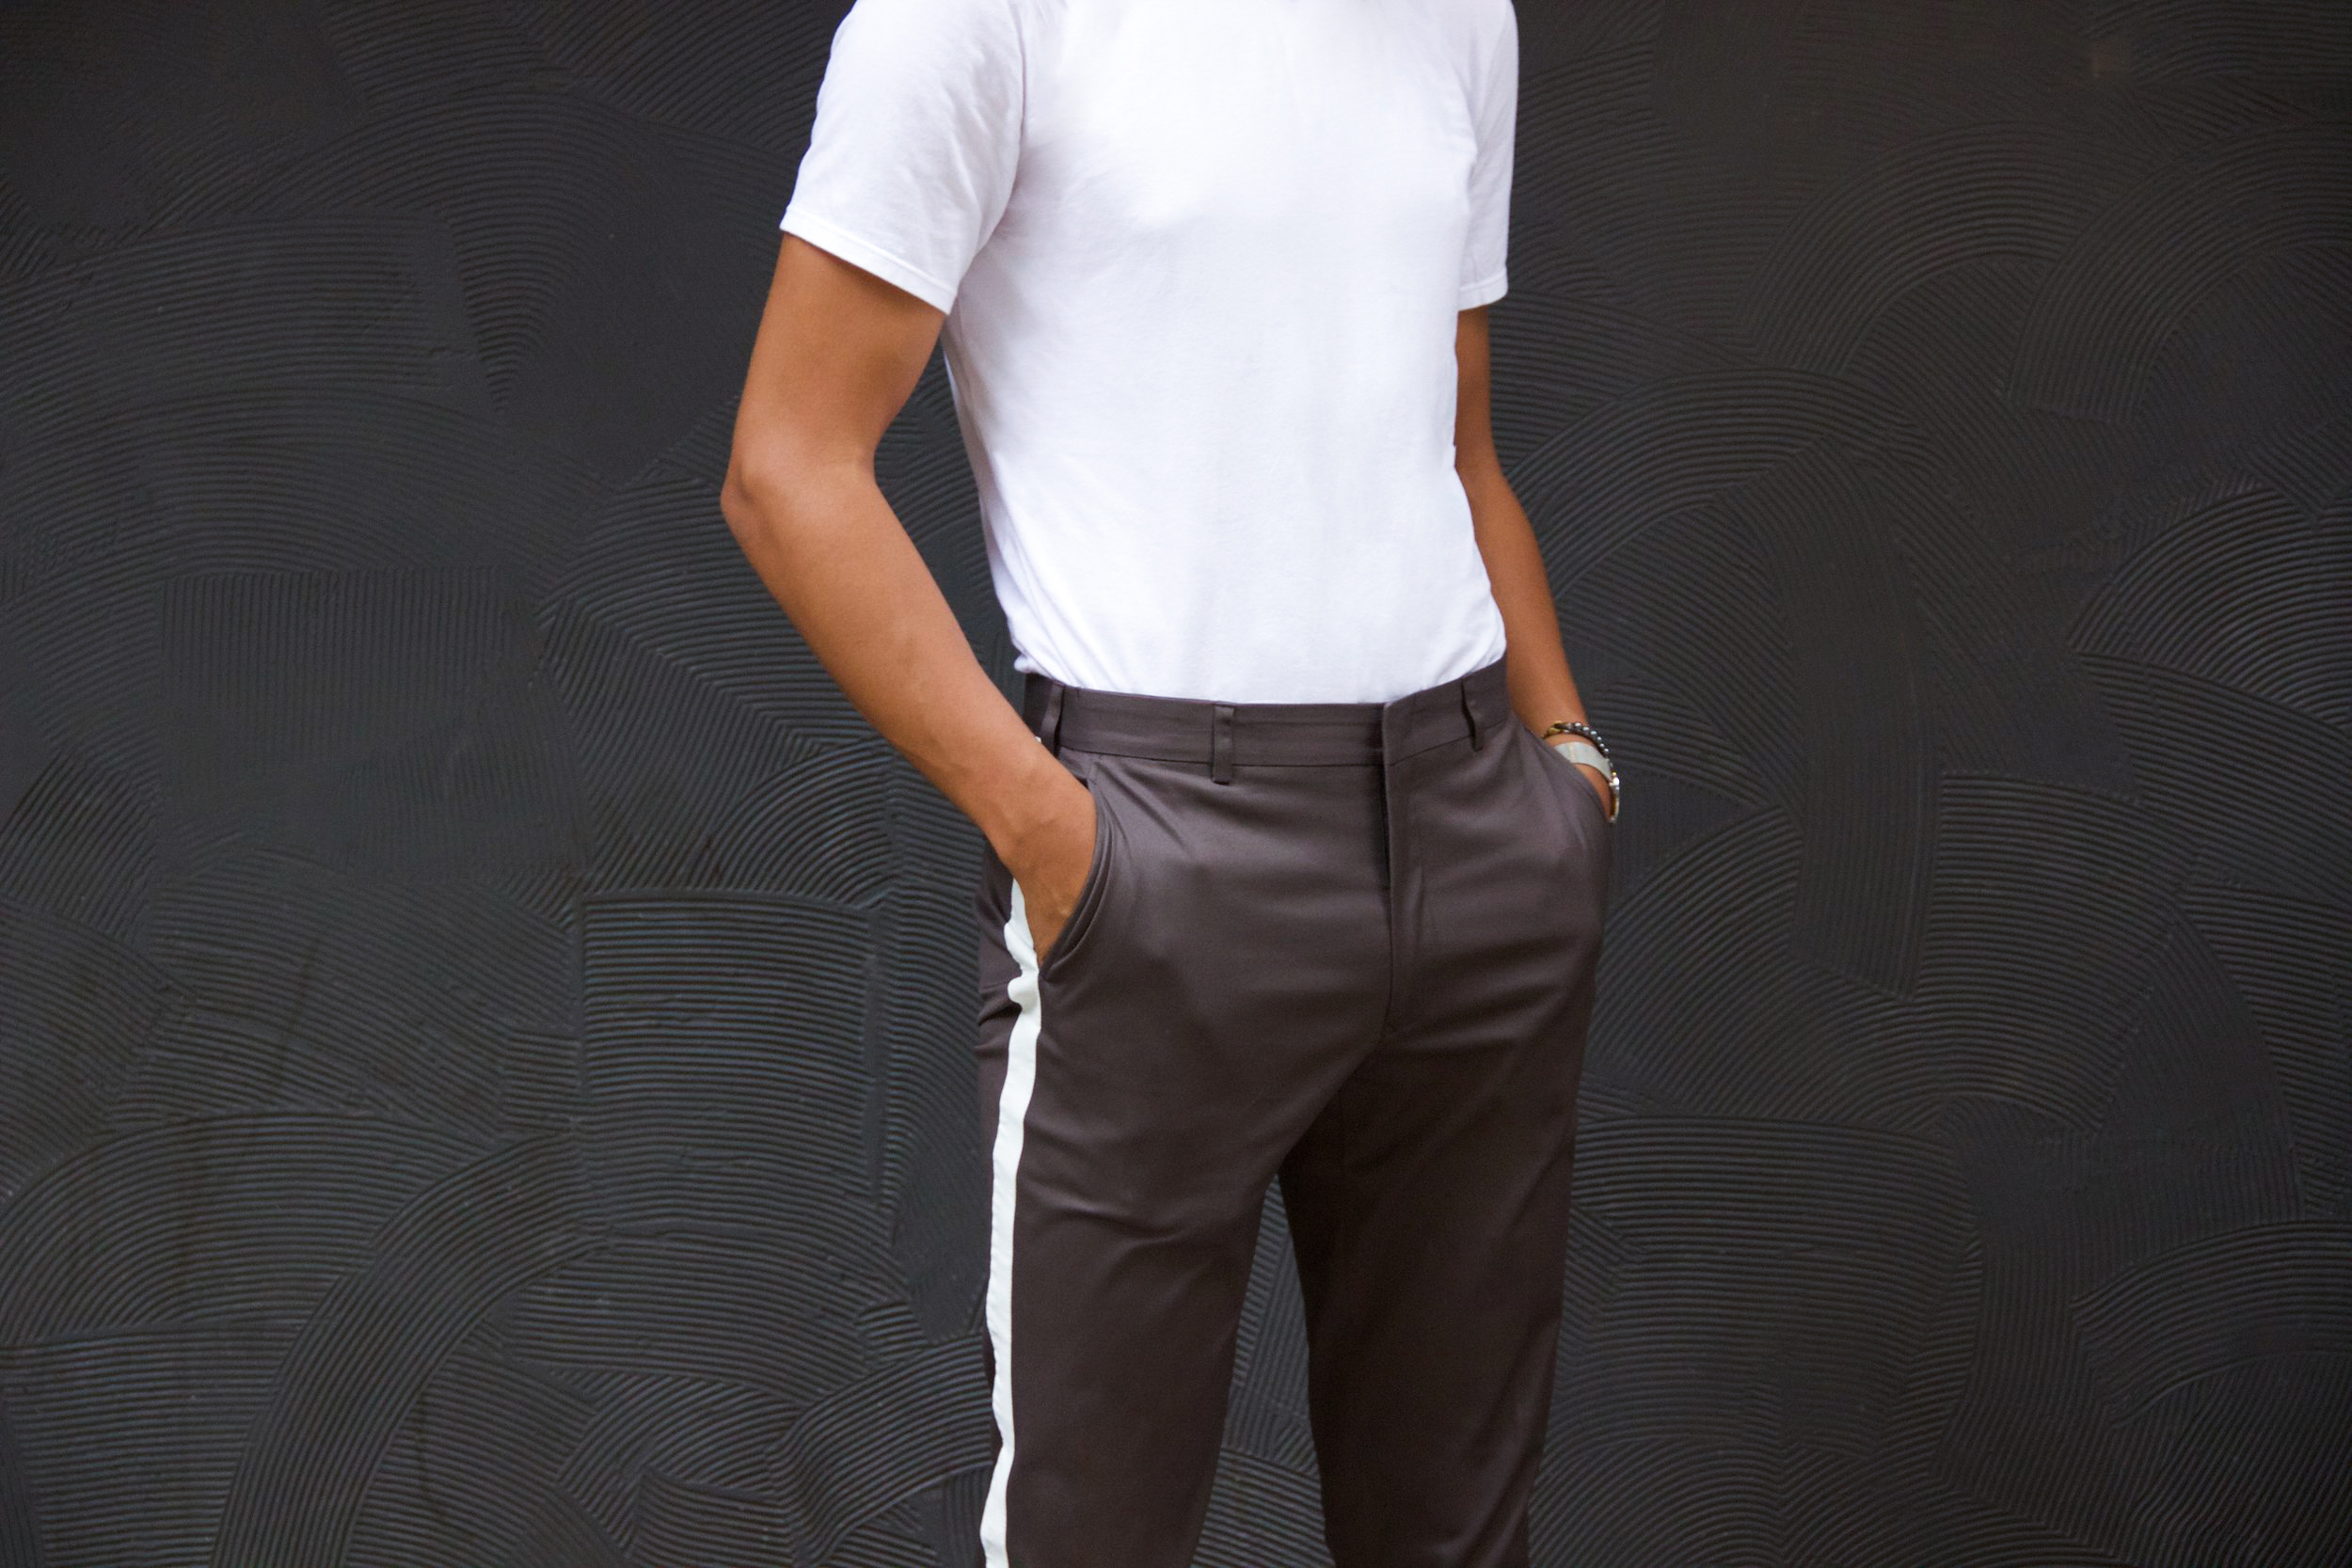 #12 The Chino - The perfect combination of mobility, professionalism, and relaxed style.